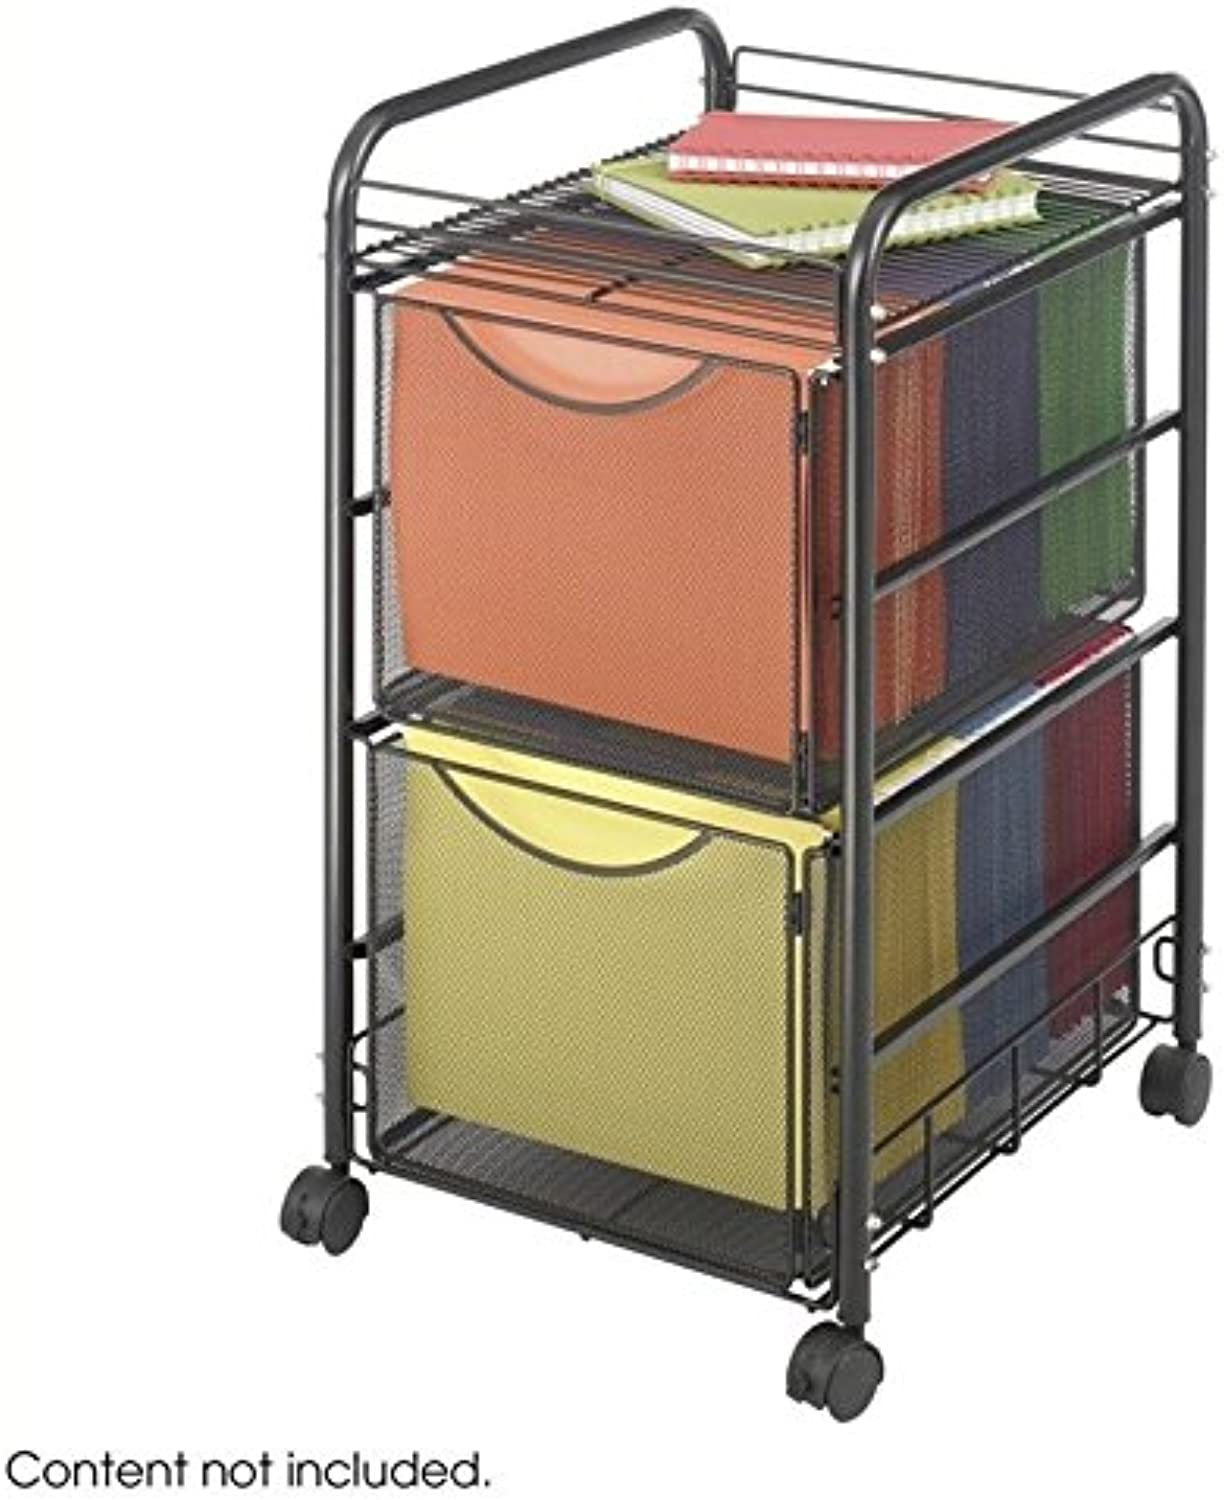 Scranton & Co Mesh File Cart with 2 File Drawers